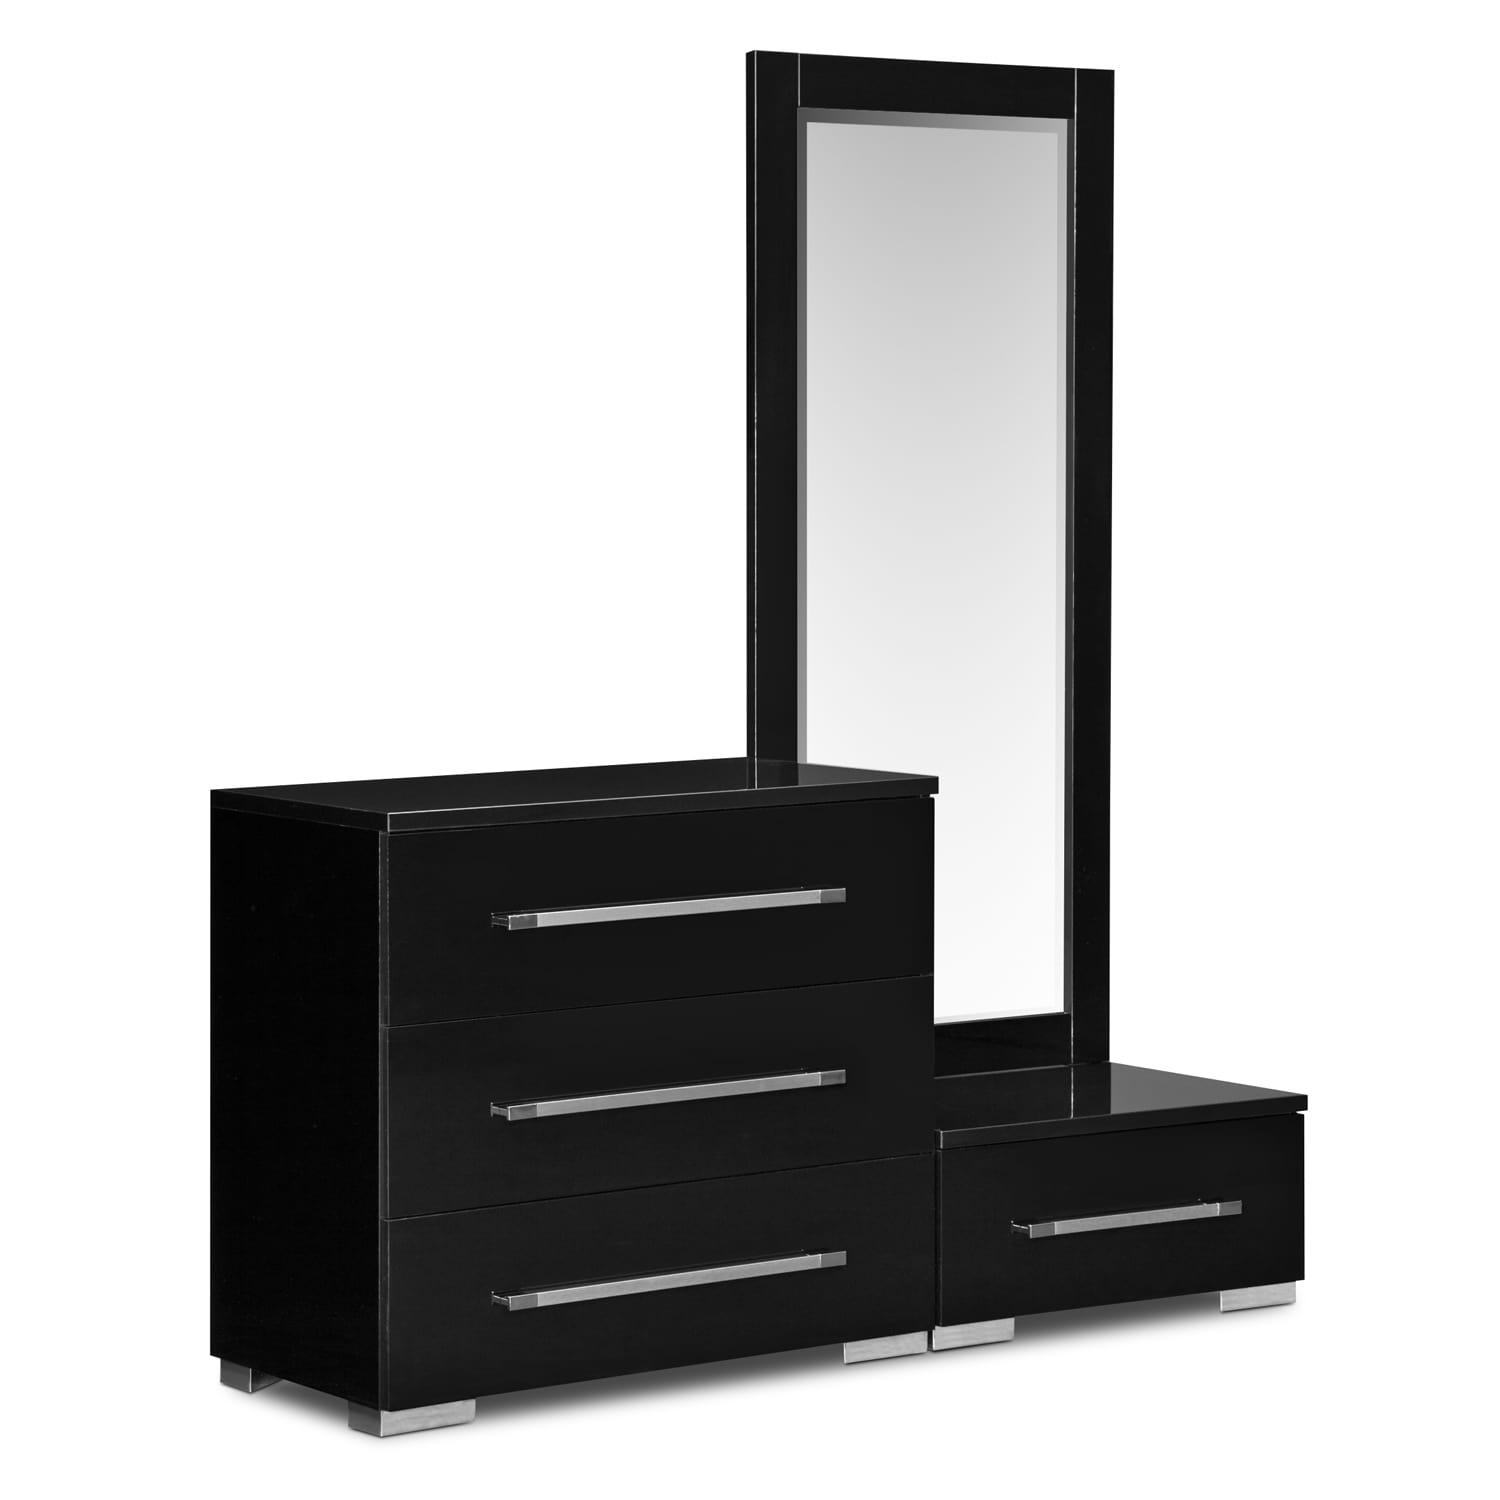 dressing dresser mirror with step american signature furniture